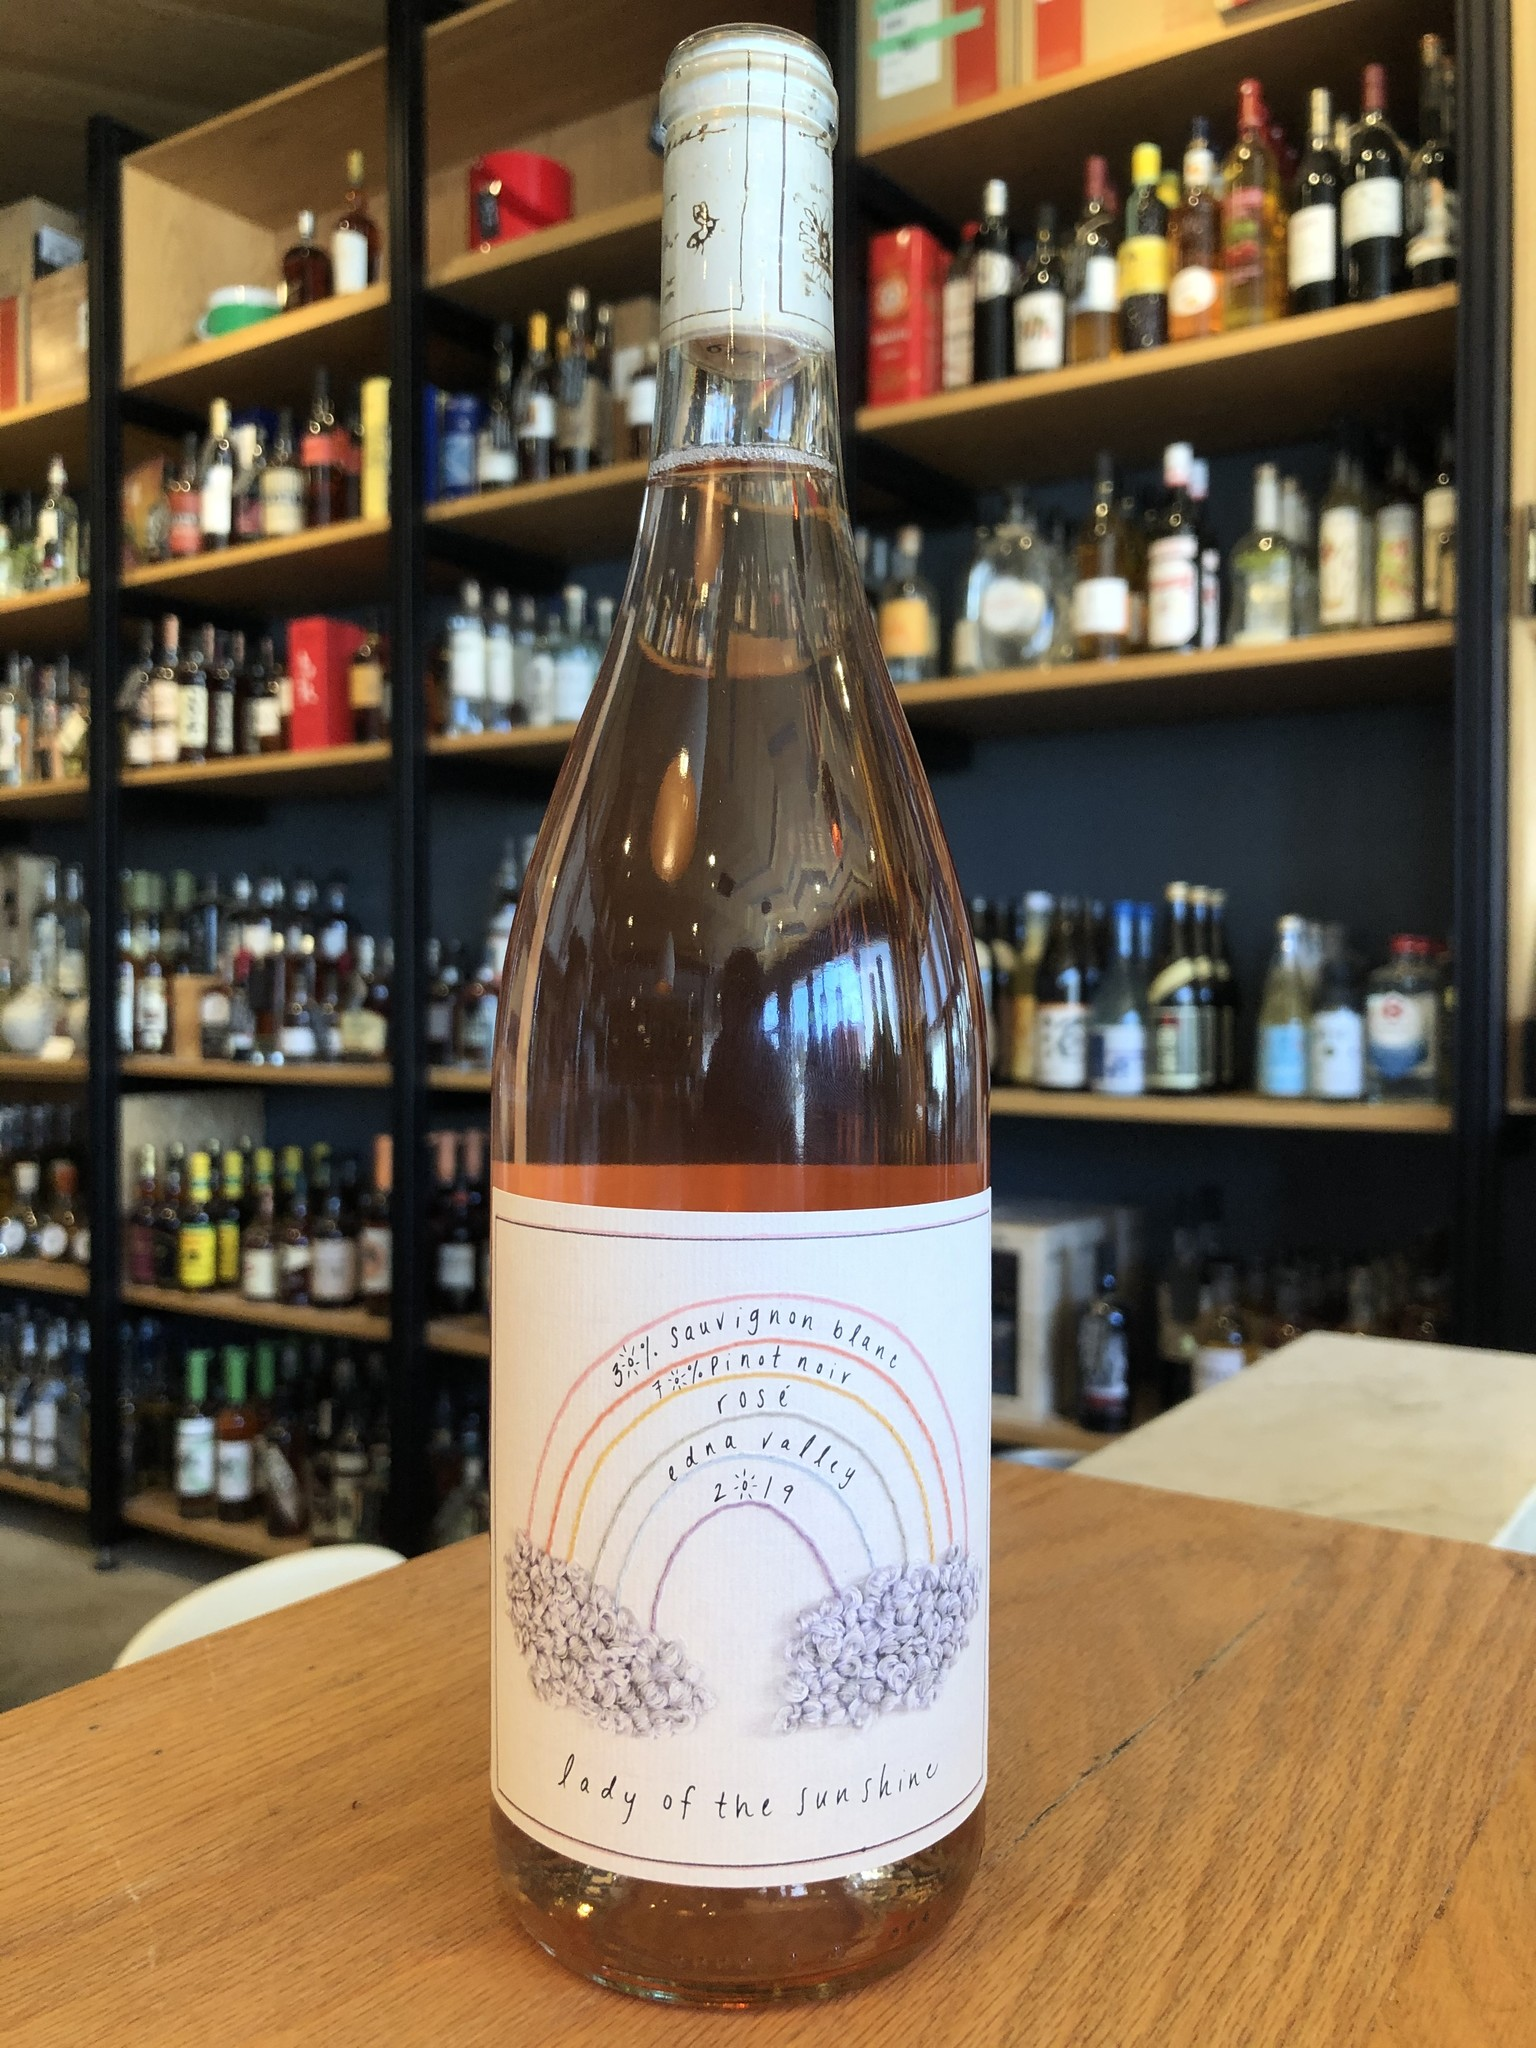 Lady of Sunshine 2019 Lady of the Sunshine Edna Valley Rosé 750ml